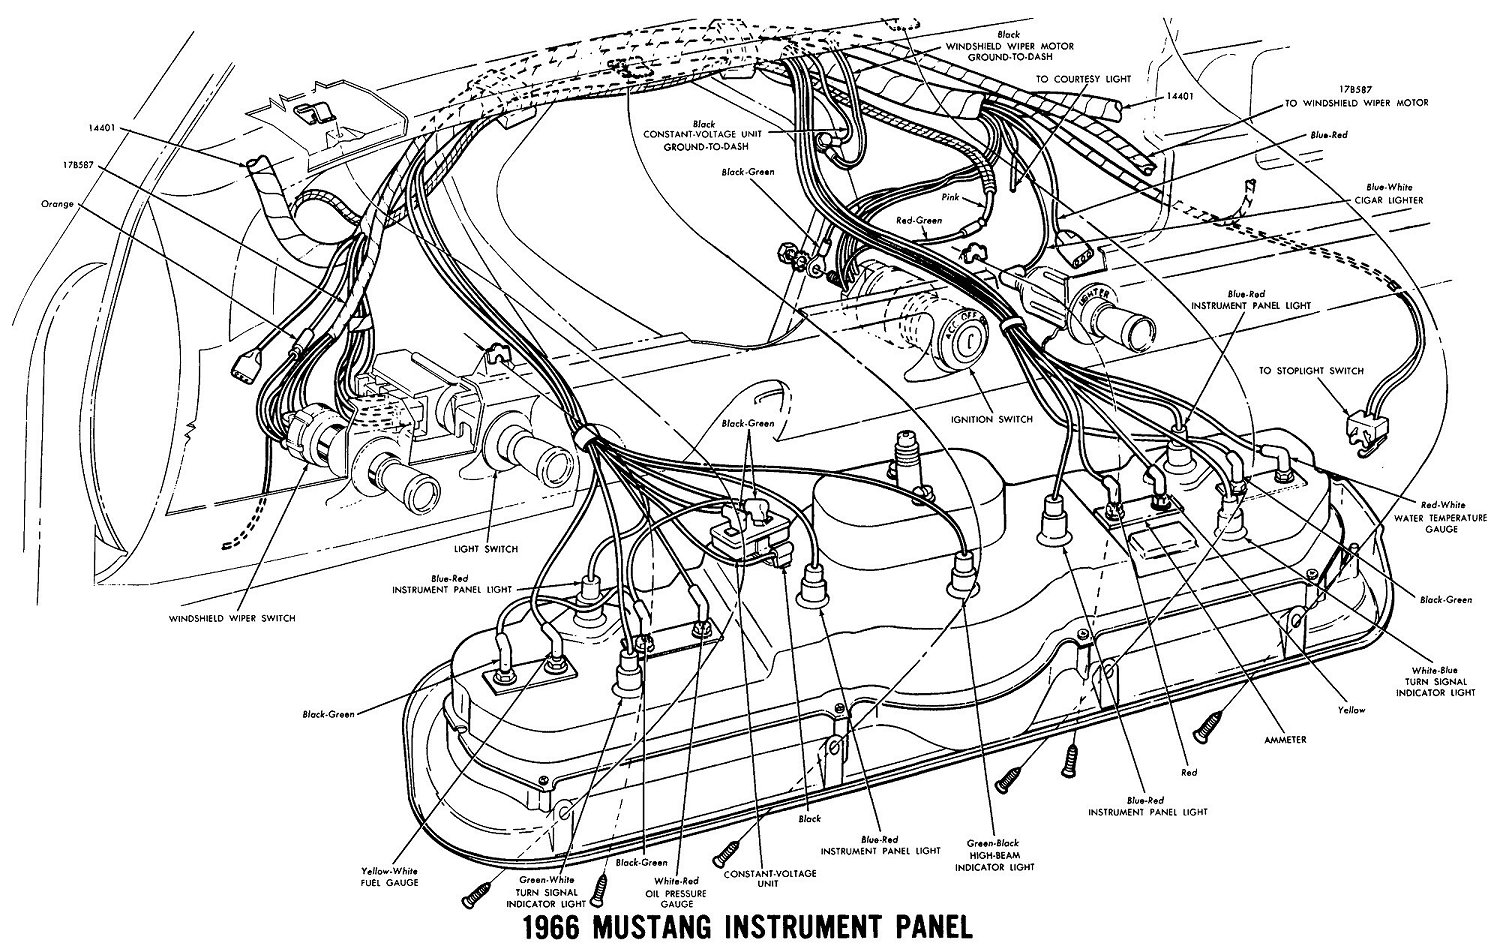 1965 chevelle dash wiring diagram 1965 image 66 mustang wiring diagrams 66 wiring diagrams on 1965 chevelle dash wiring diagram